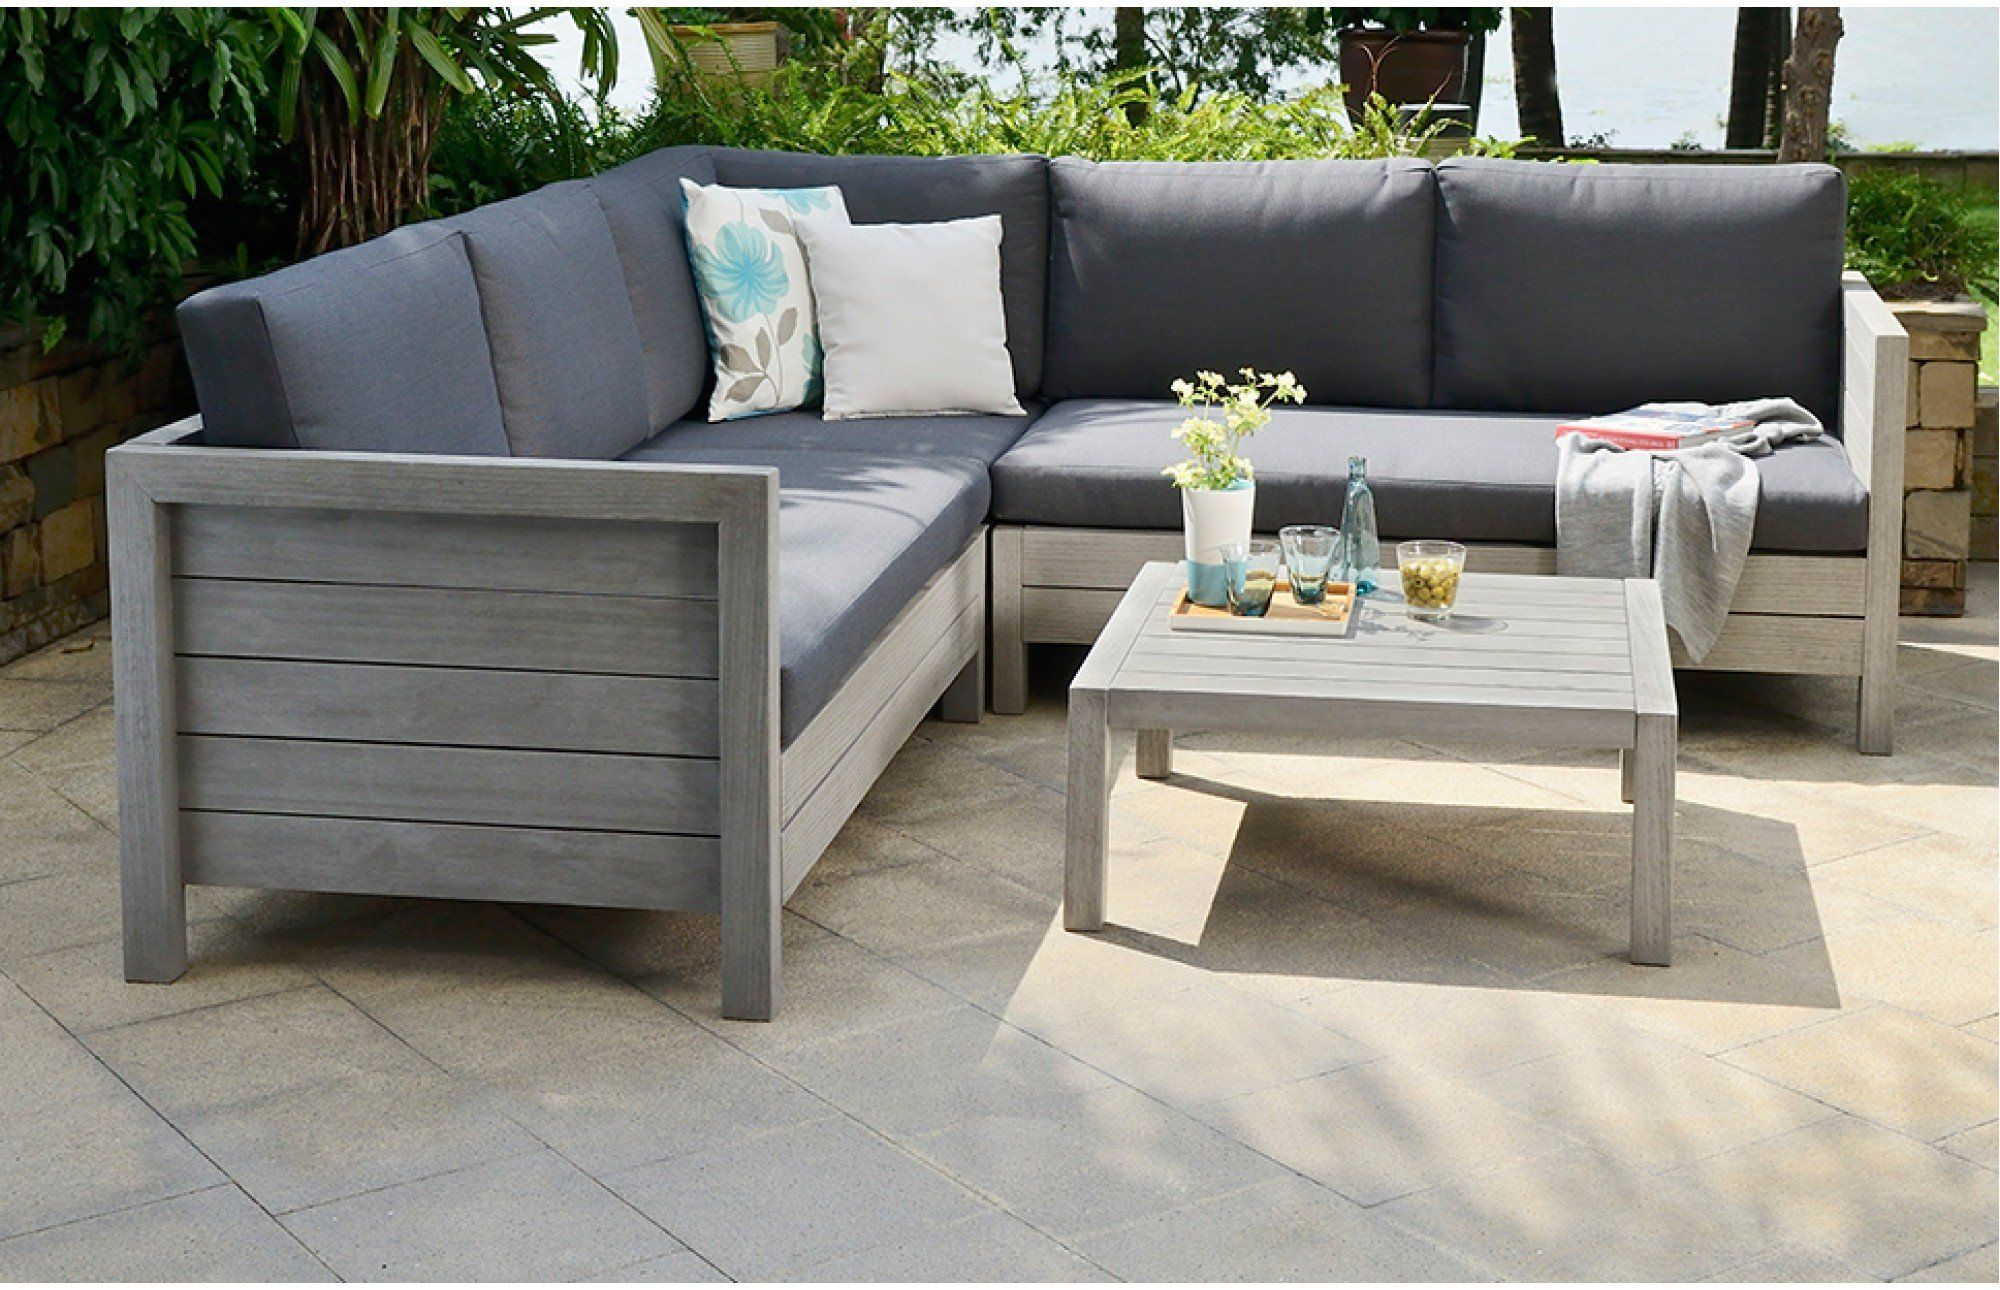 Discover The Uk S Most Unique Range Of Designer Garden Sofa Sets In Wood Teak And Rattan With Free De In 2020 Gray Patio Furniture Garden Sofa Set Corner Sofa Outdoor